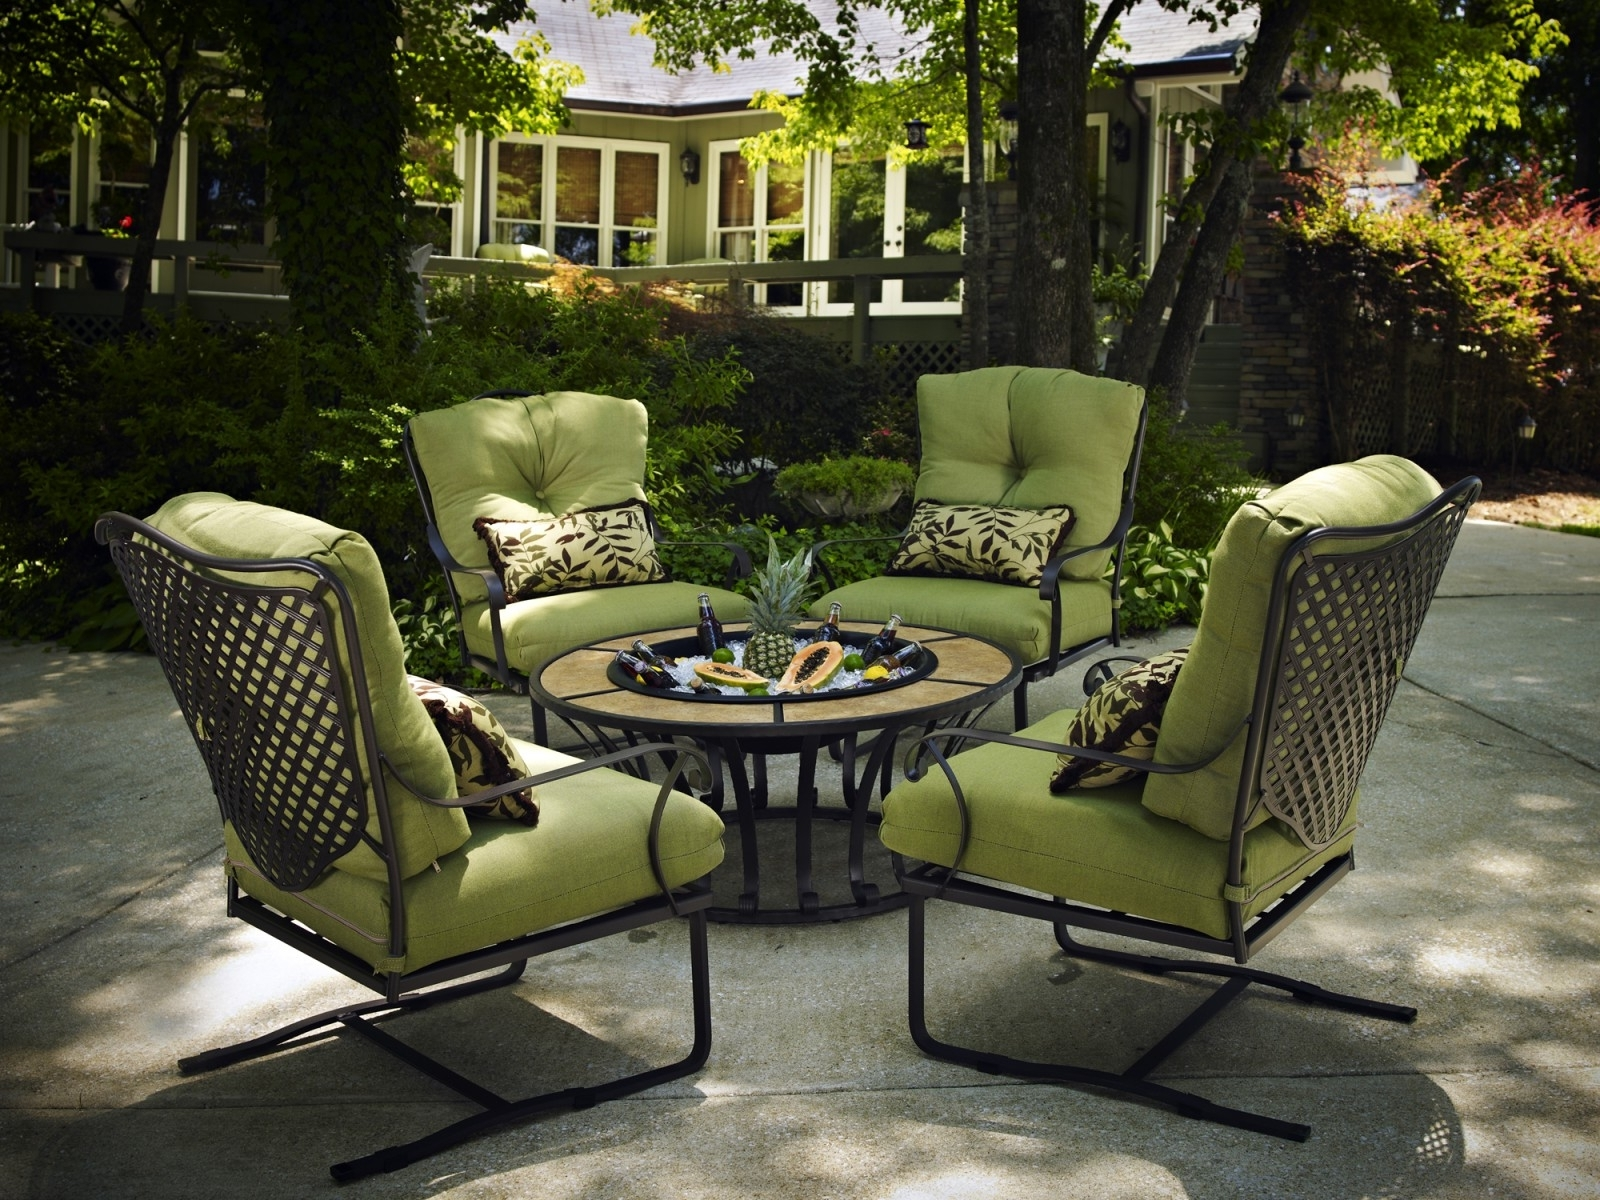 Most Recently Released Patio Conversation Sets With Cushions With Regard To Patio : Wrought Iron Patio Furnitureca Furniture Value Plantation (View 15 of 15)